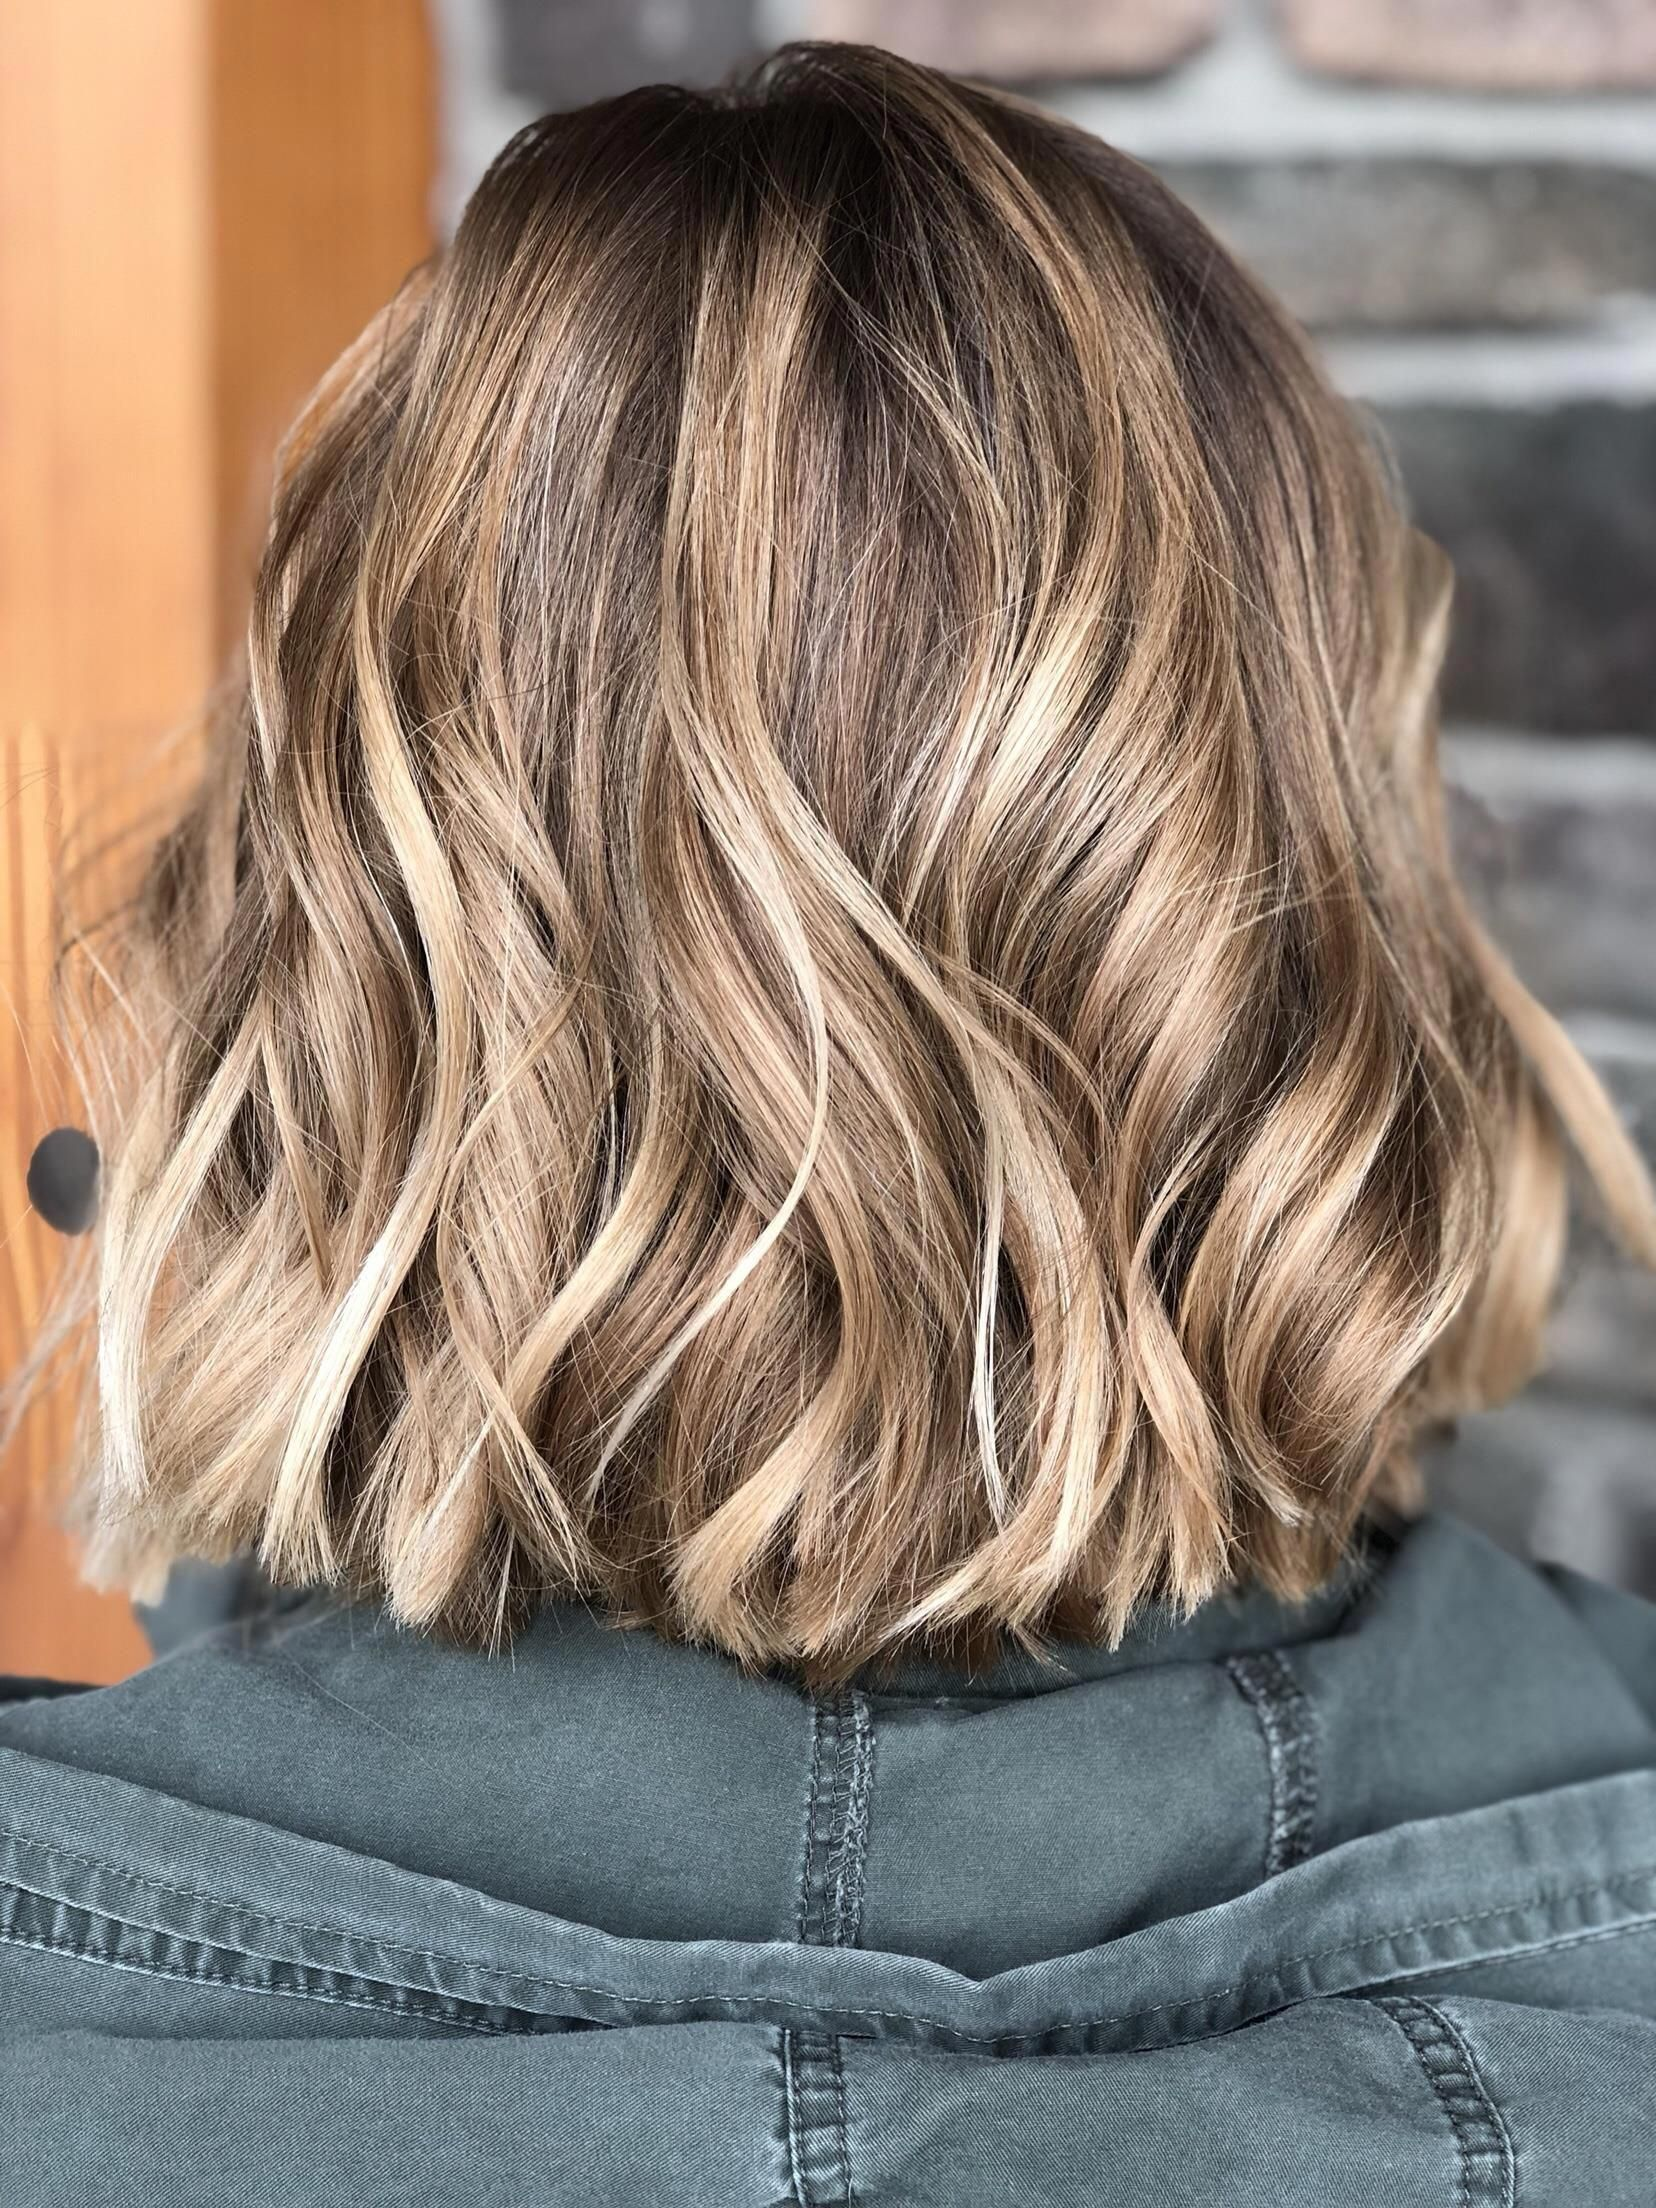 Balayage 120 French For To Sweep Literally Sweeping The Product Onto Your Hair S Brown Hair With Blonde Highlights Brown Blonde Hair Short Hair Balayage